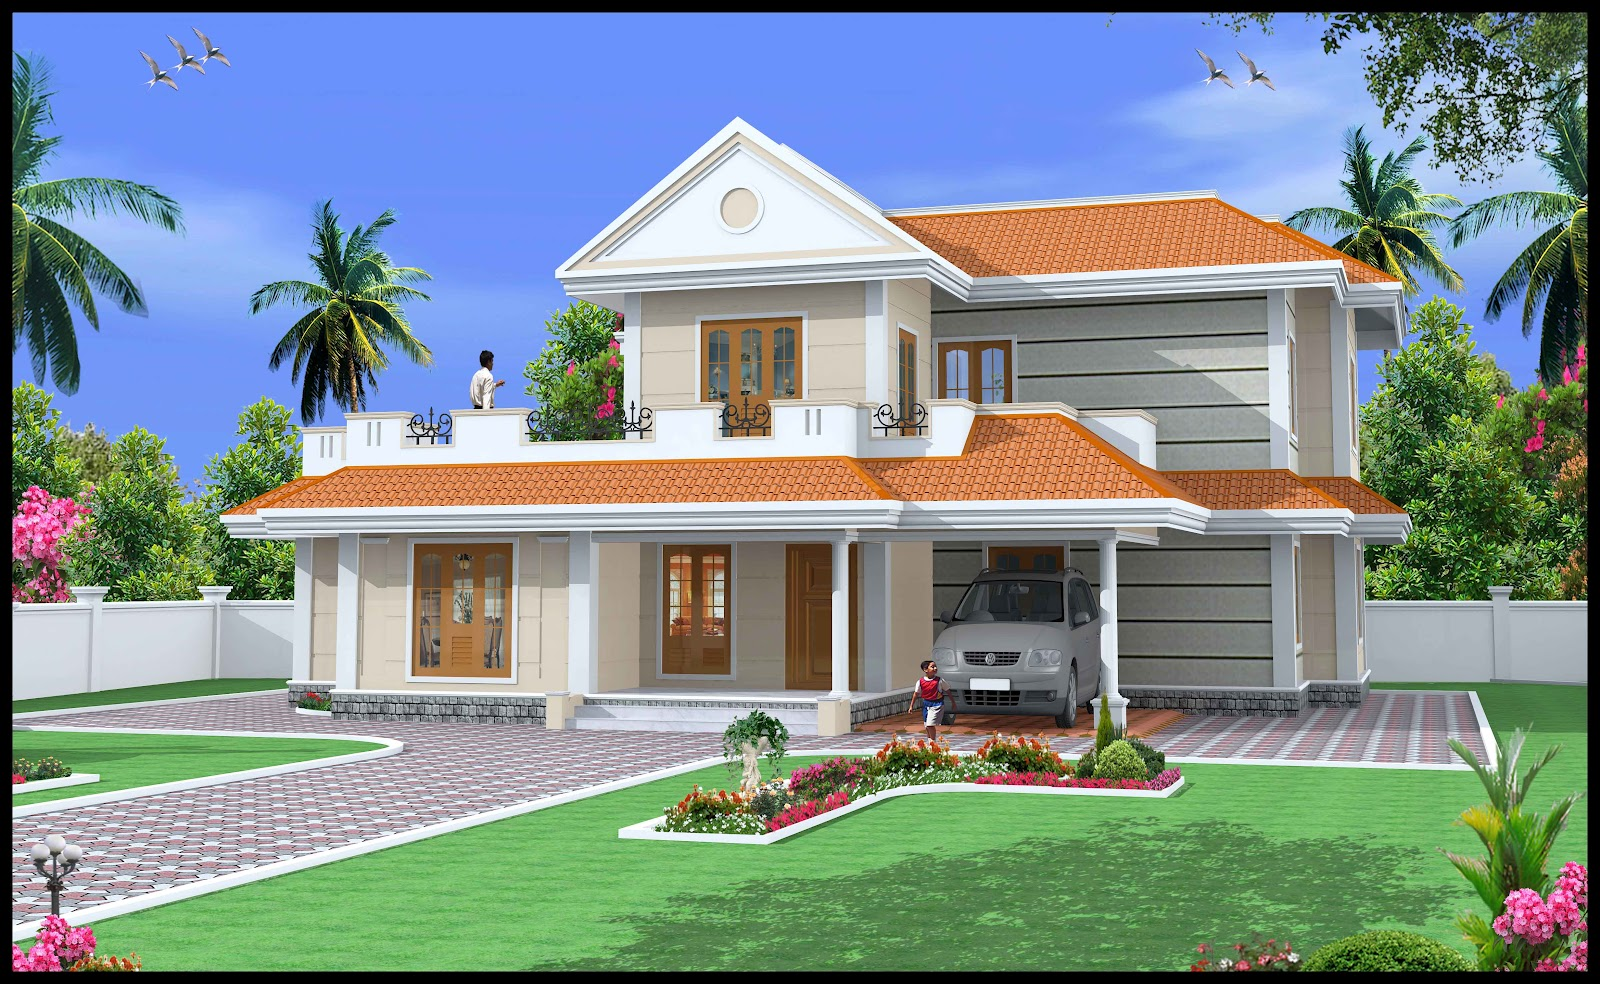 Simple duplex house design indian duplex house designs for Duplex home plan design